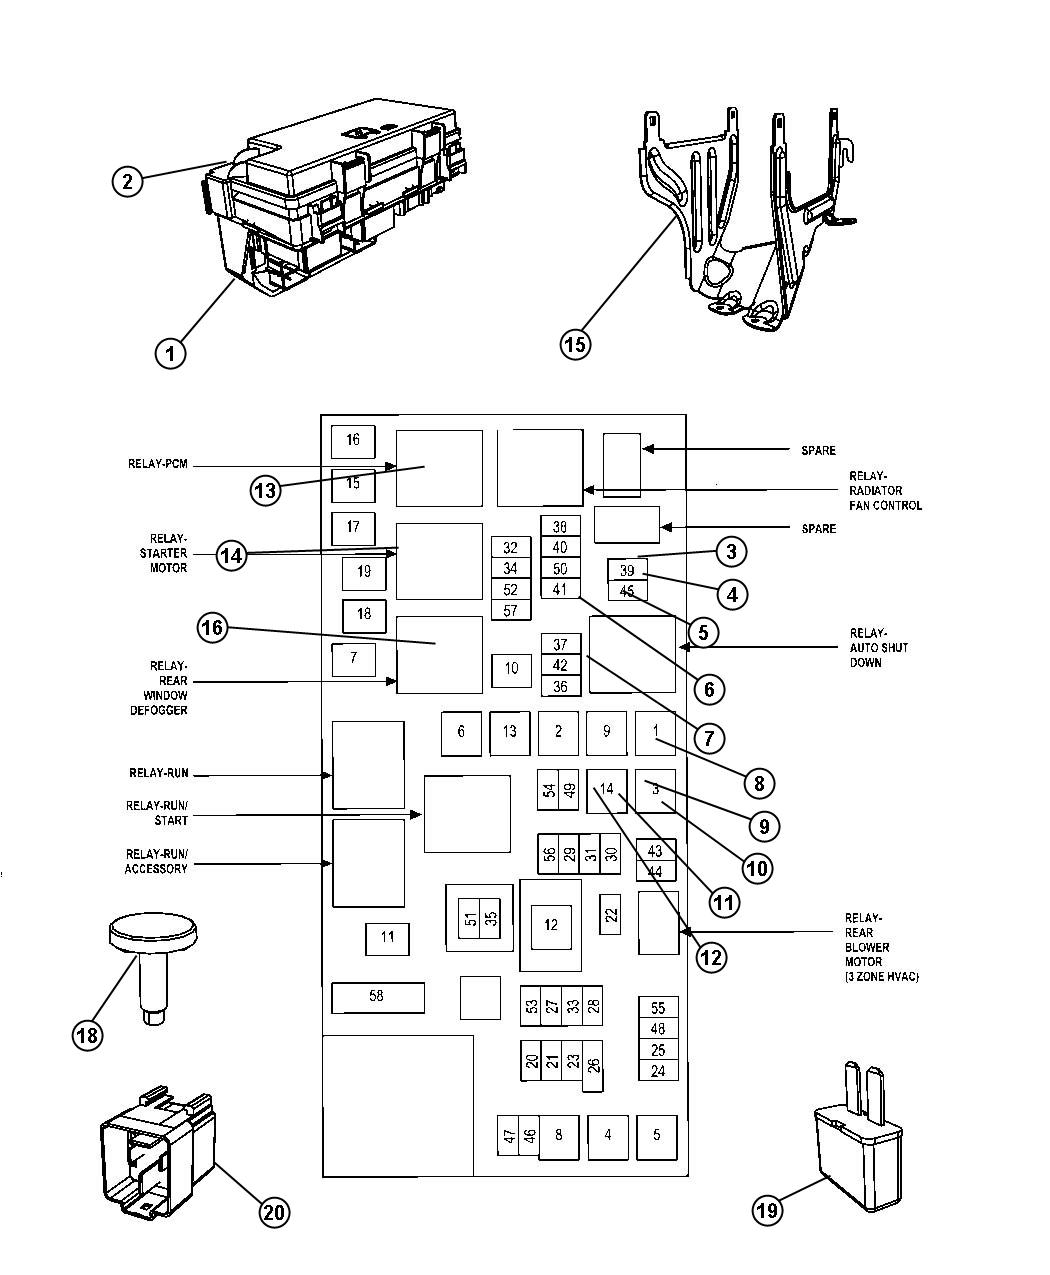 Chrysler Town & Country Module. Totally integrated power